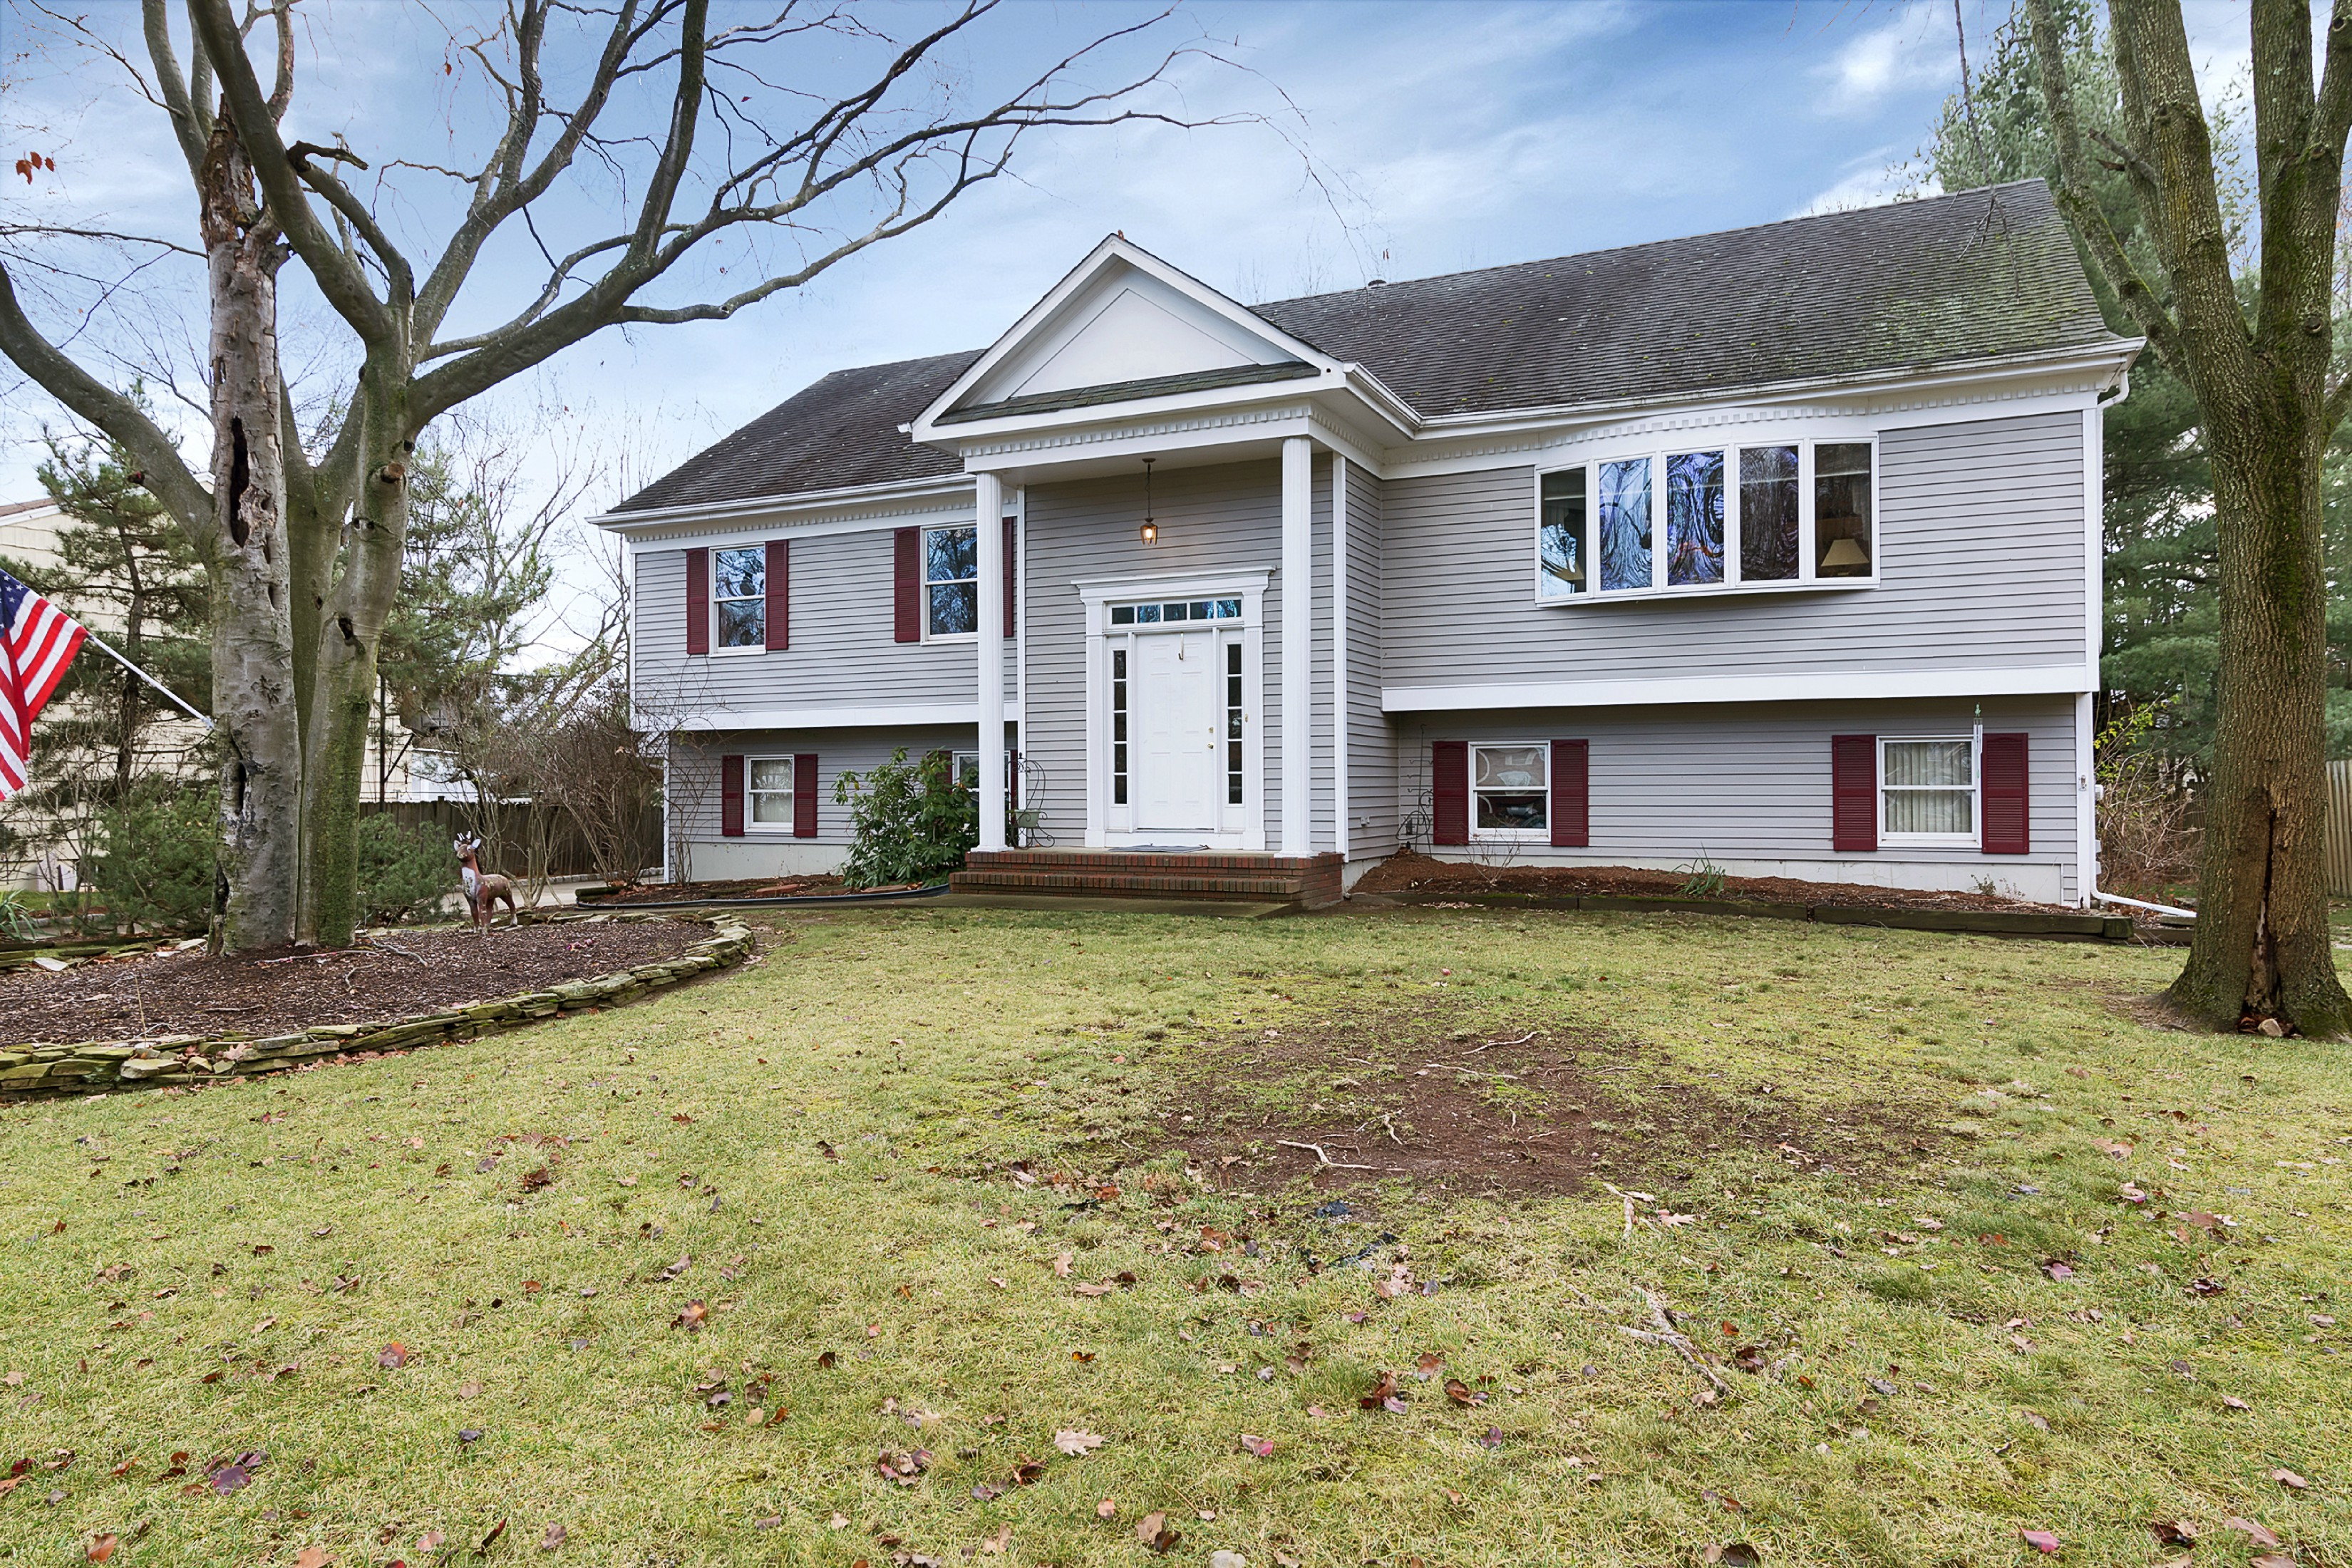 Single Family Home for Sale at 15 Barbara St, Parsippany Parsippany, 07054 United States